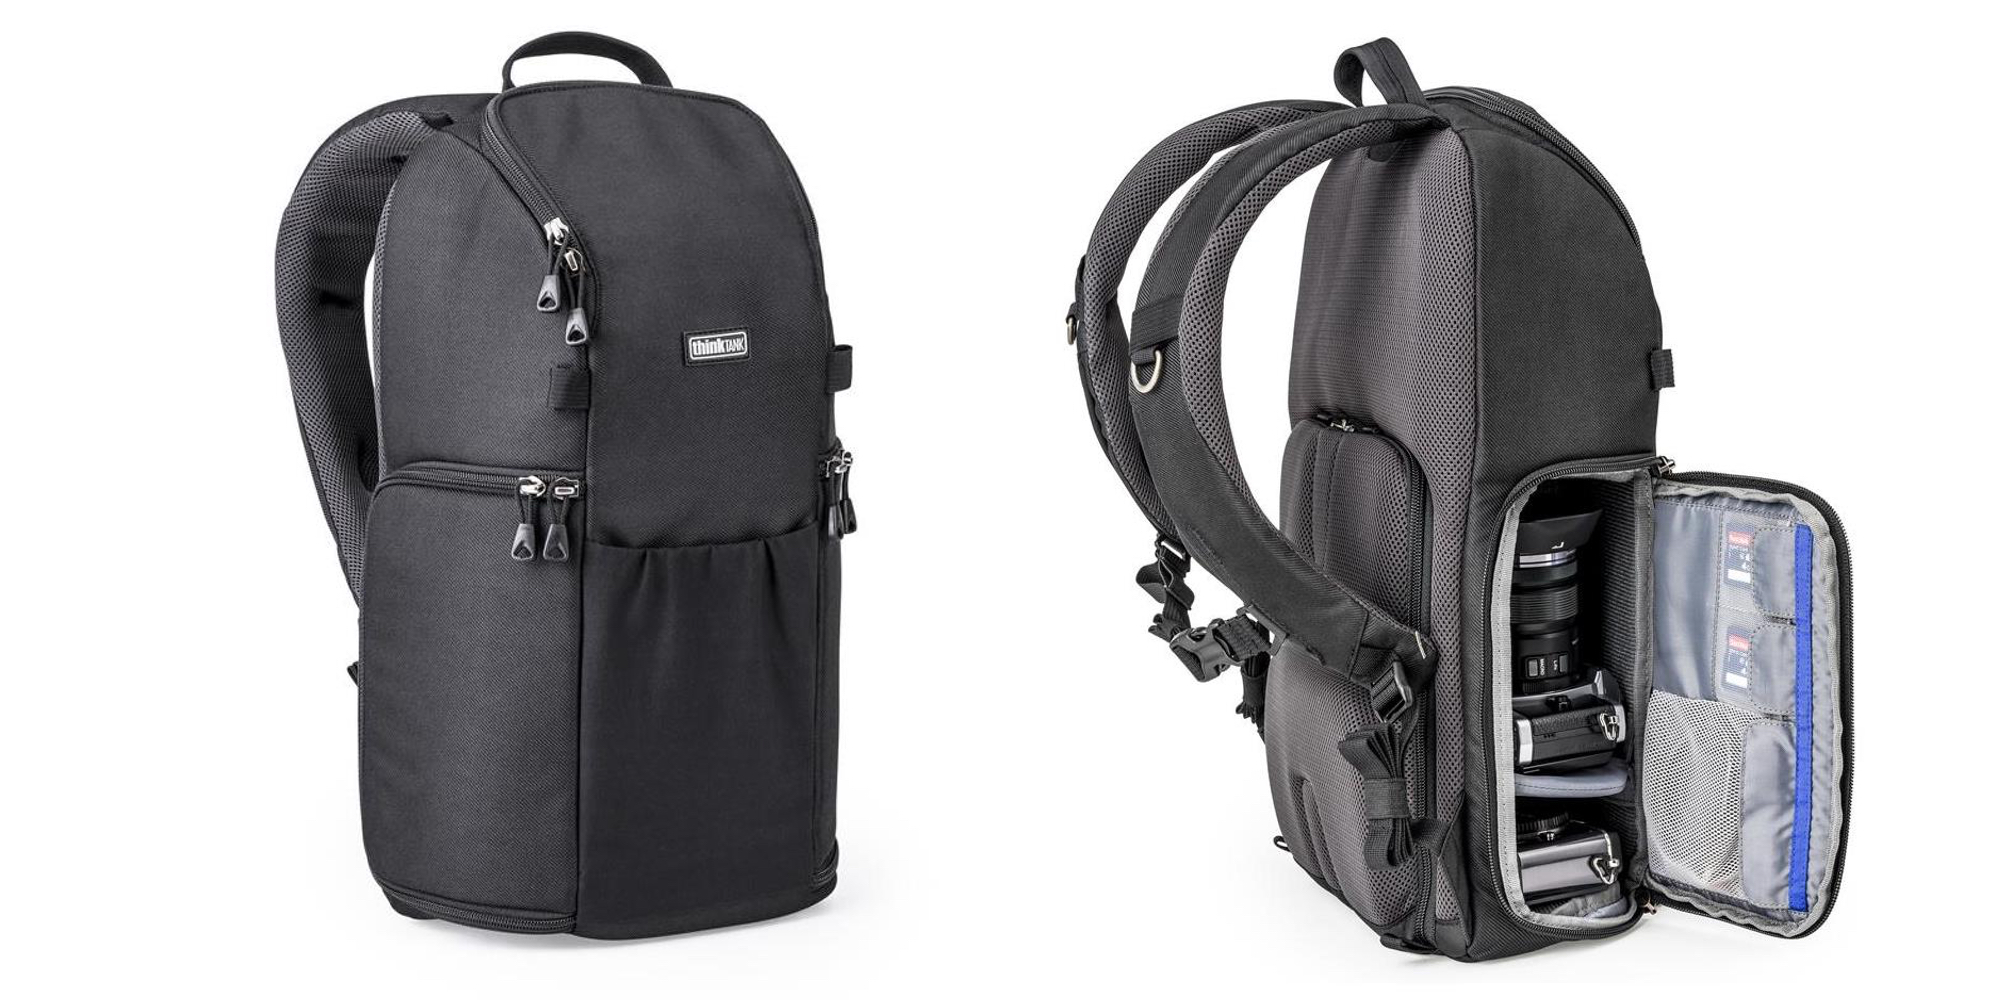 Think Tank Trifecta 8 Camera Bag holds all your photography gear for $60 (Reg. $140)